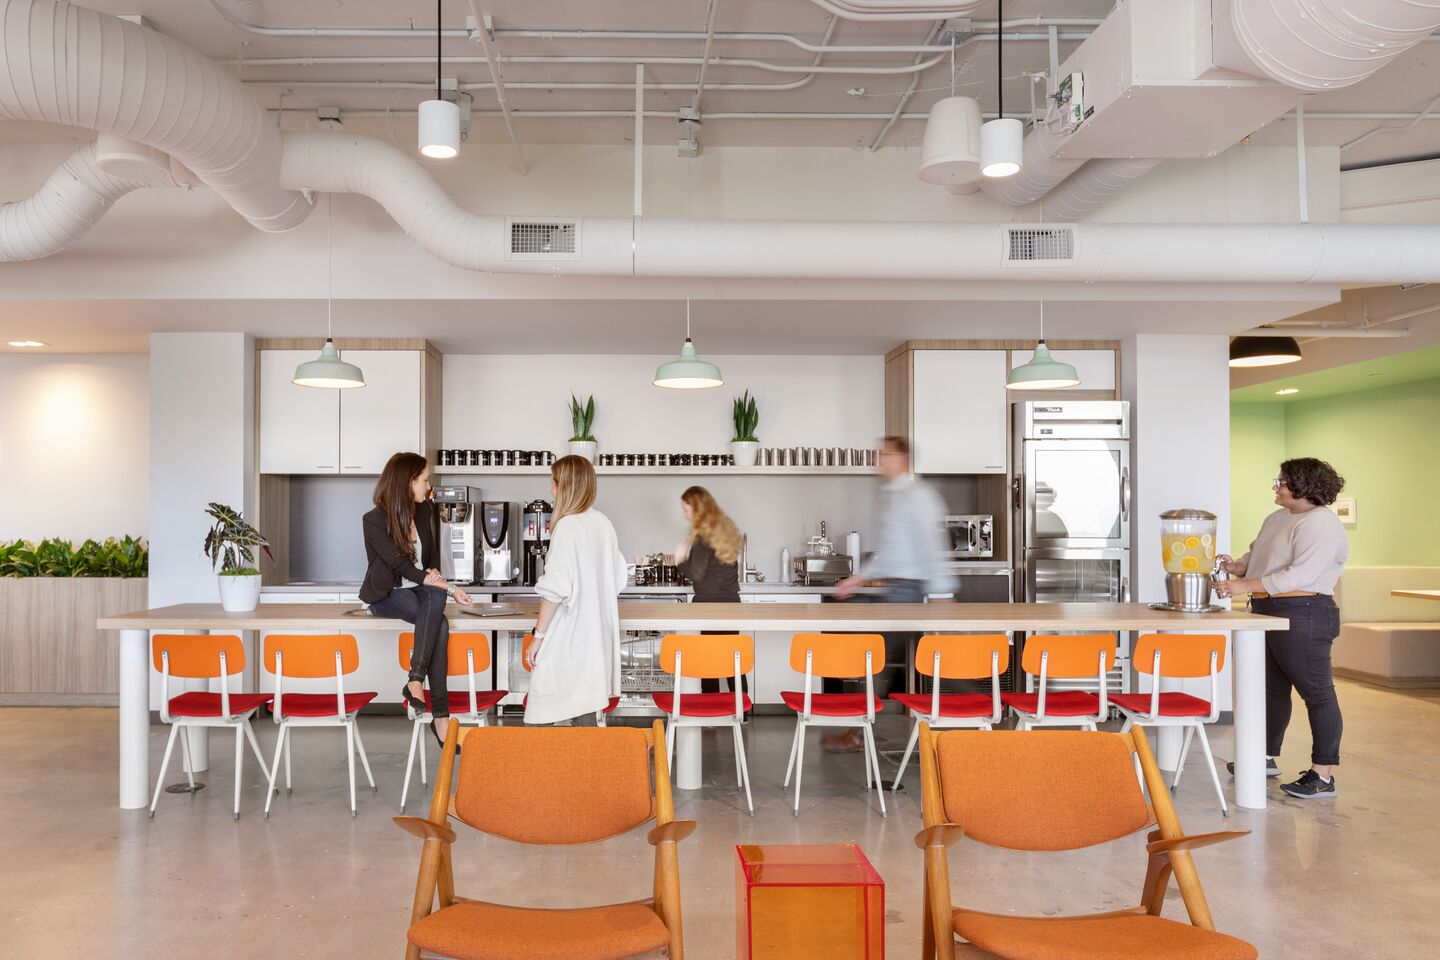 WeWork Coworking & Office Space